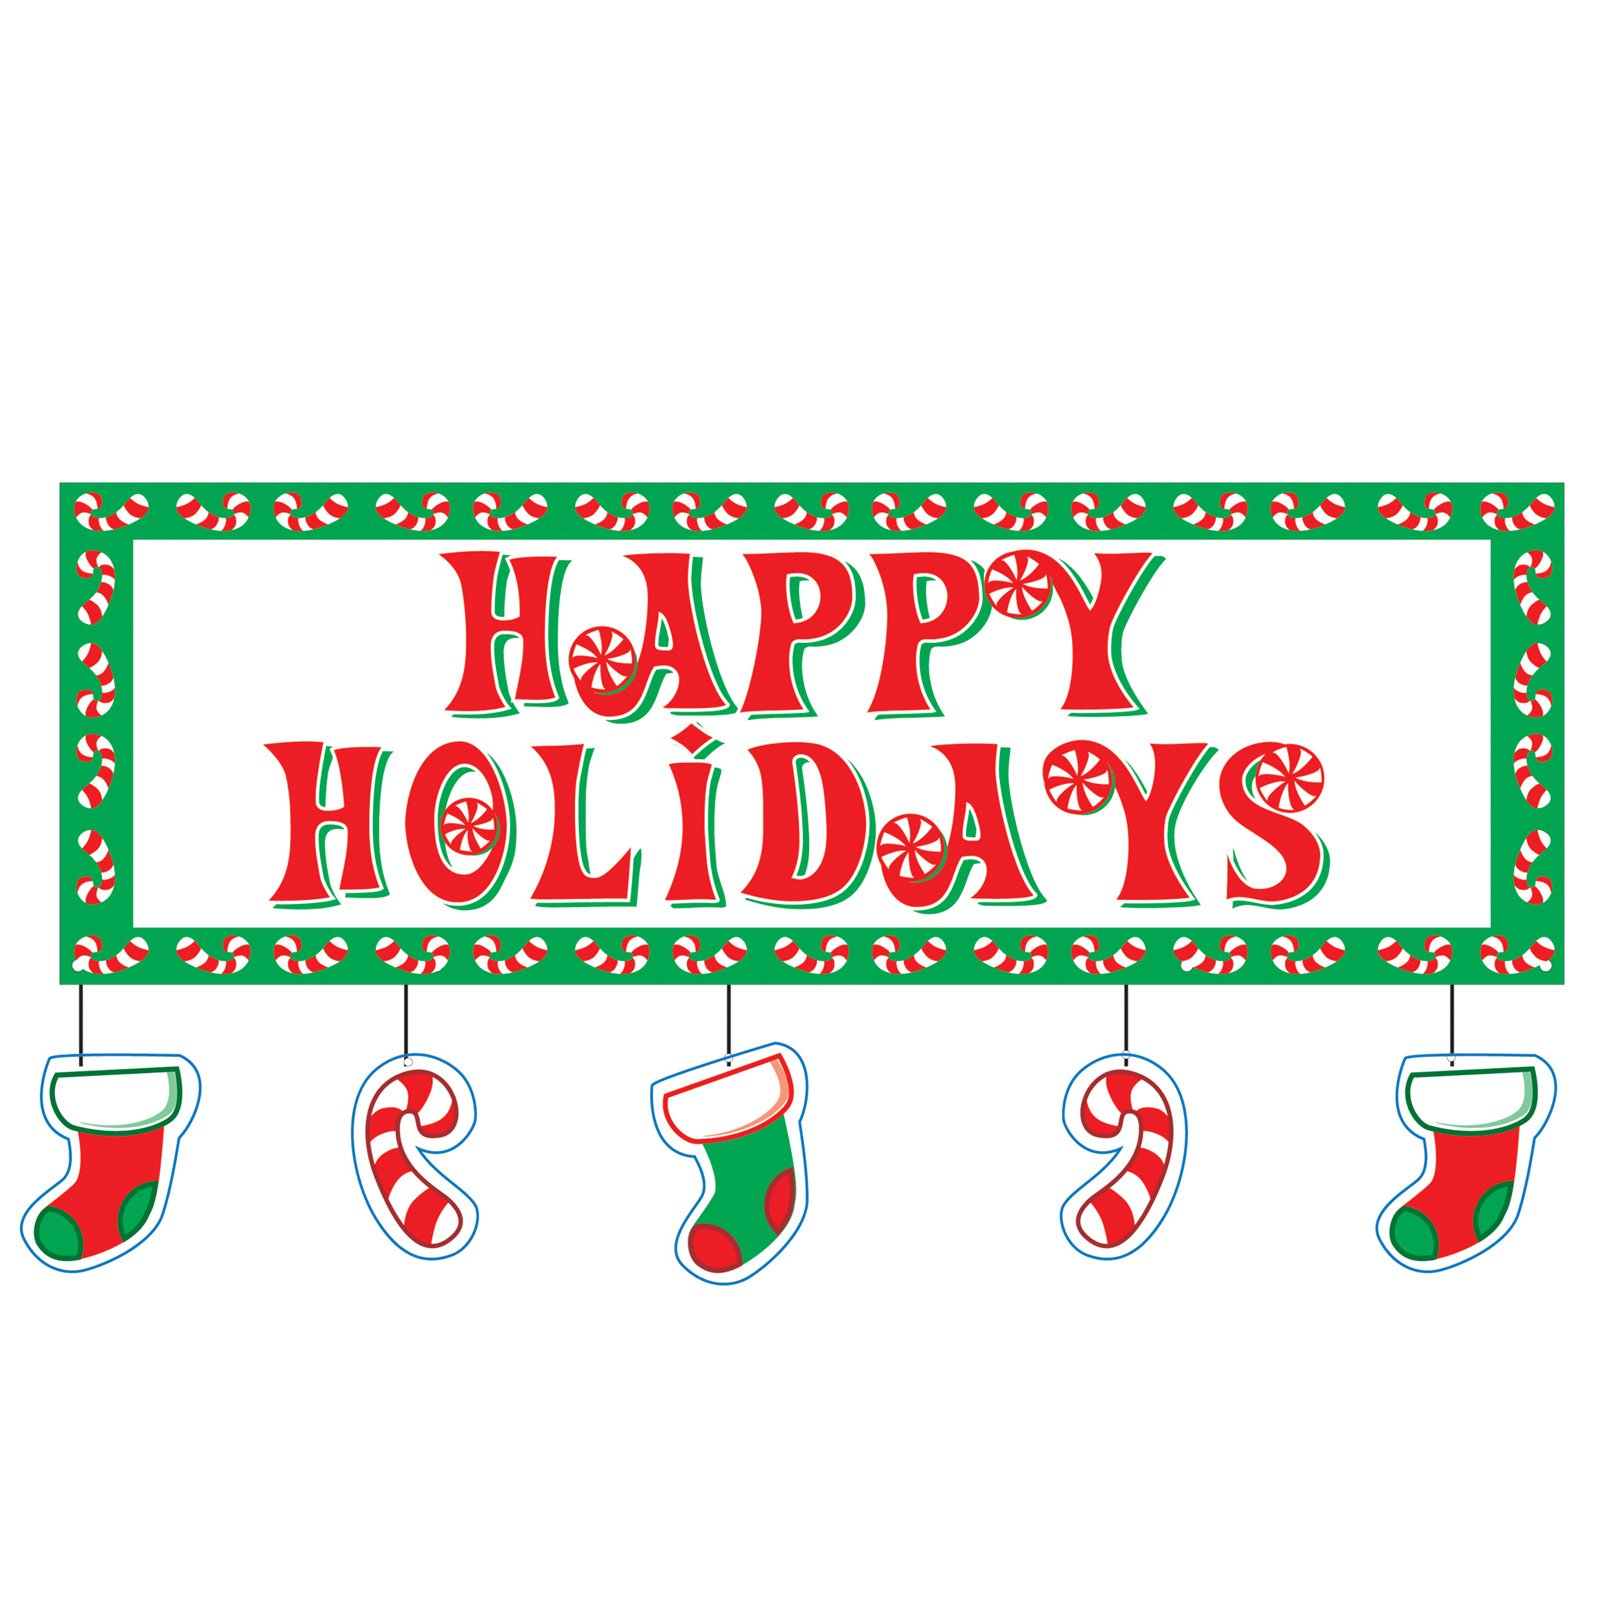 happy holidays clip art banner - ClipArt Best - ClipArt Best